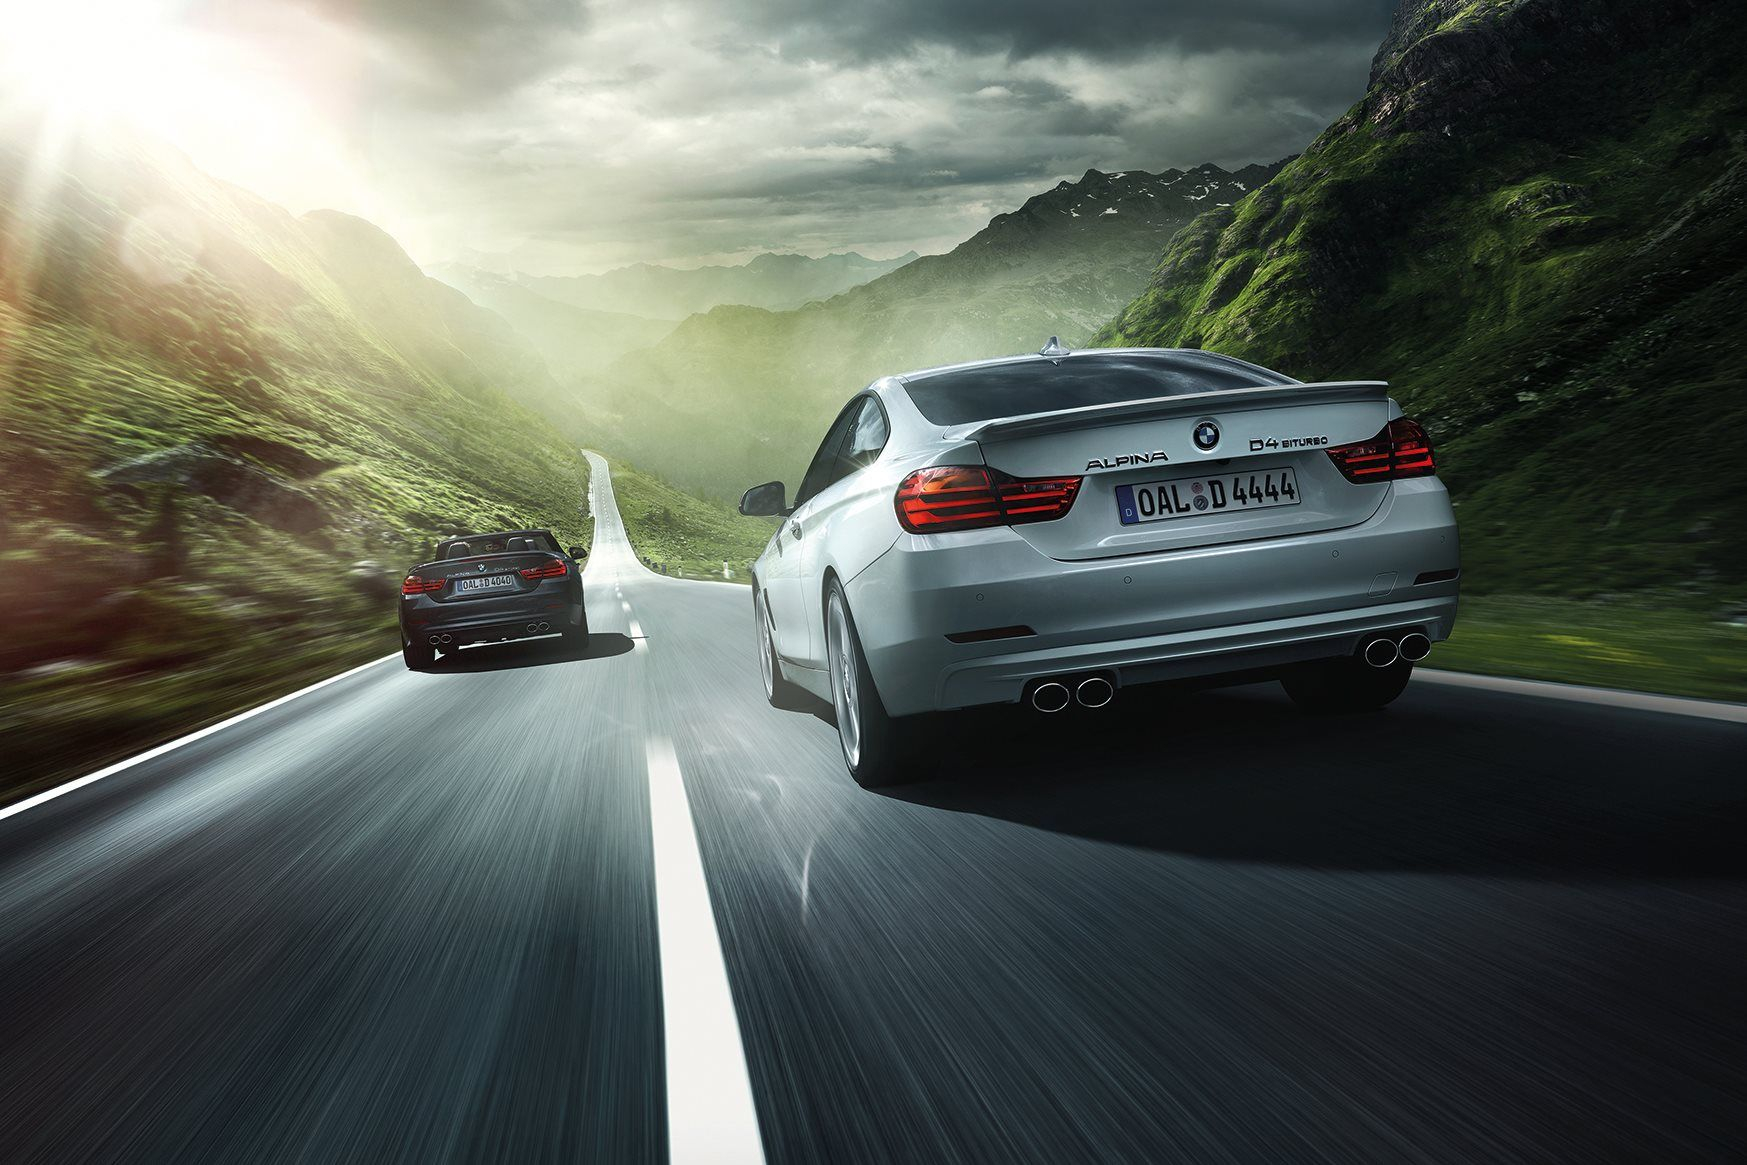 Alpina D4 Convertible And Coupe With Twin Turbo Diesel From 58 600 Euros Bmw Alpina Alpina Car Wallpapers